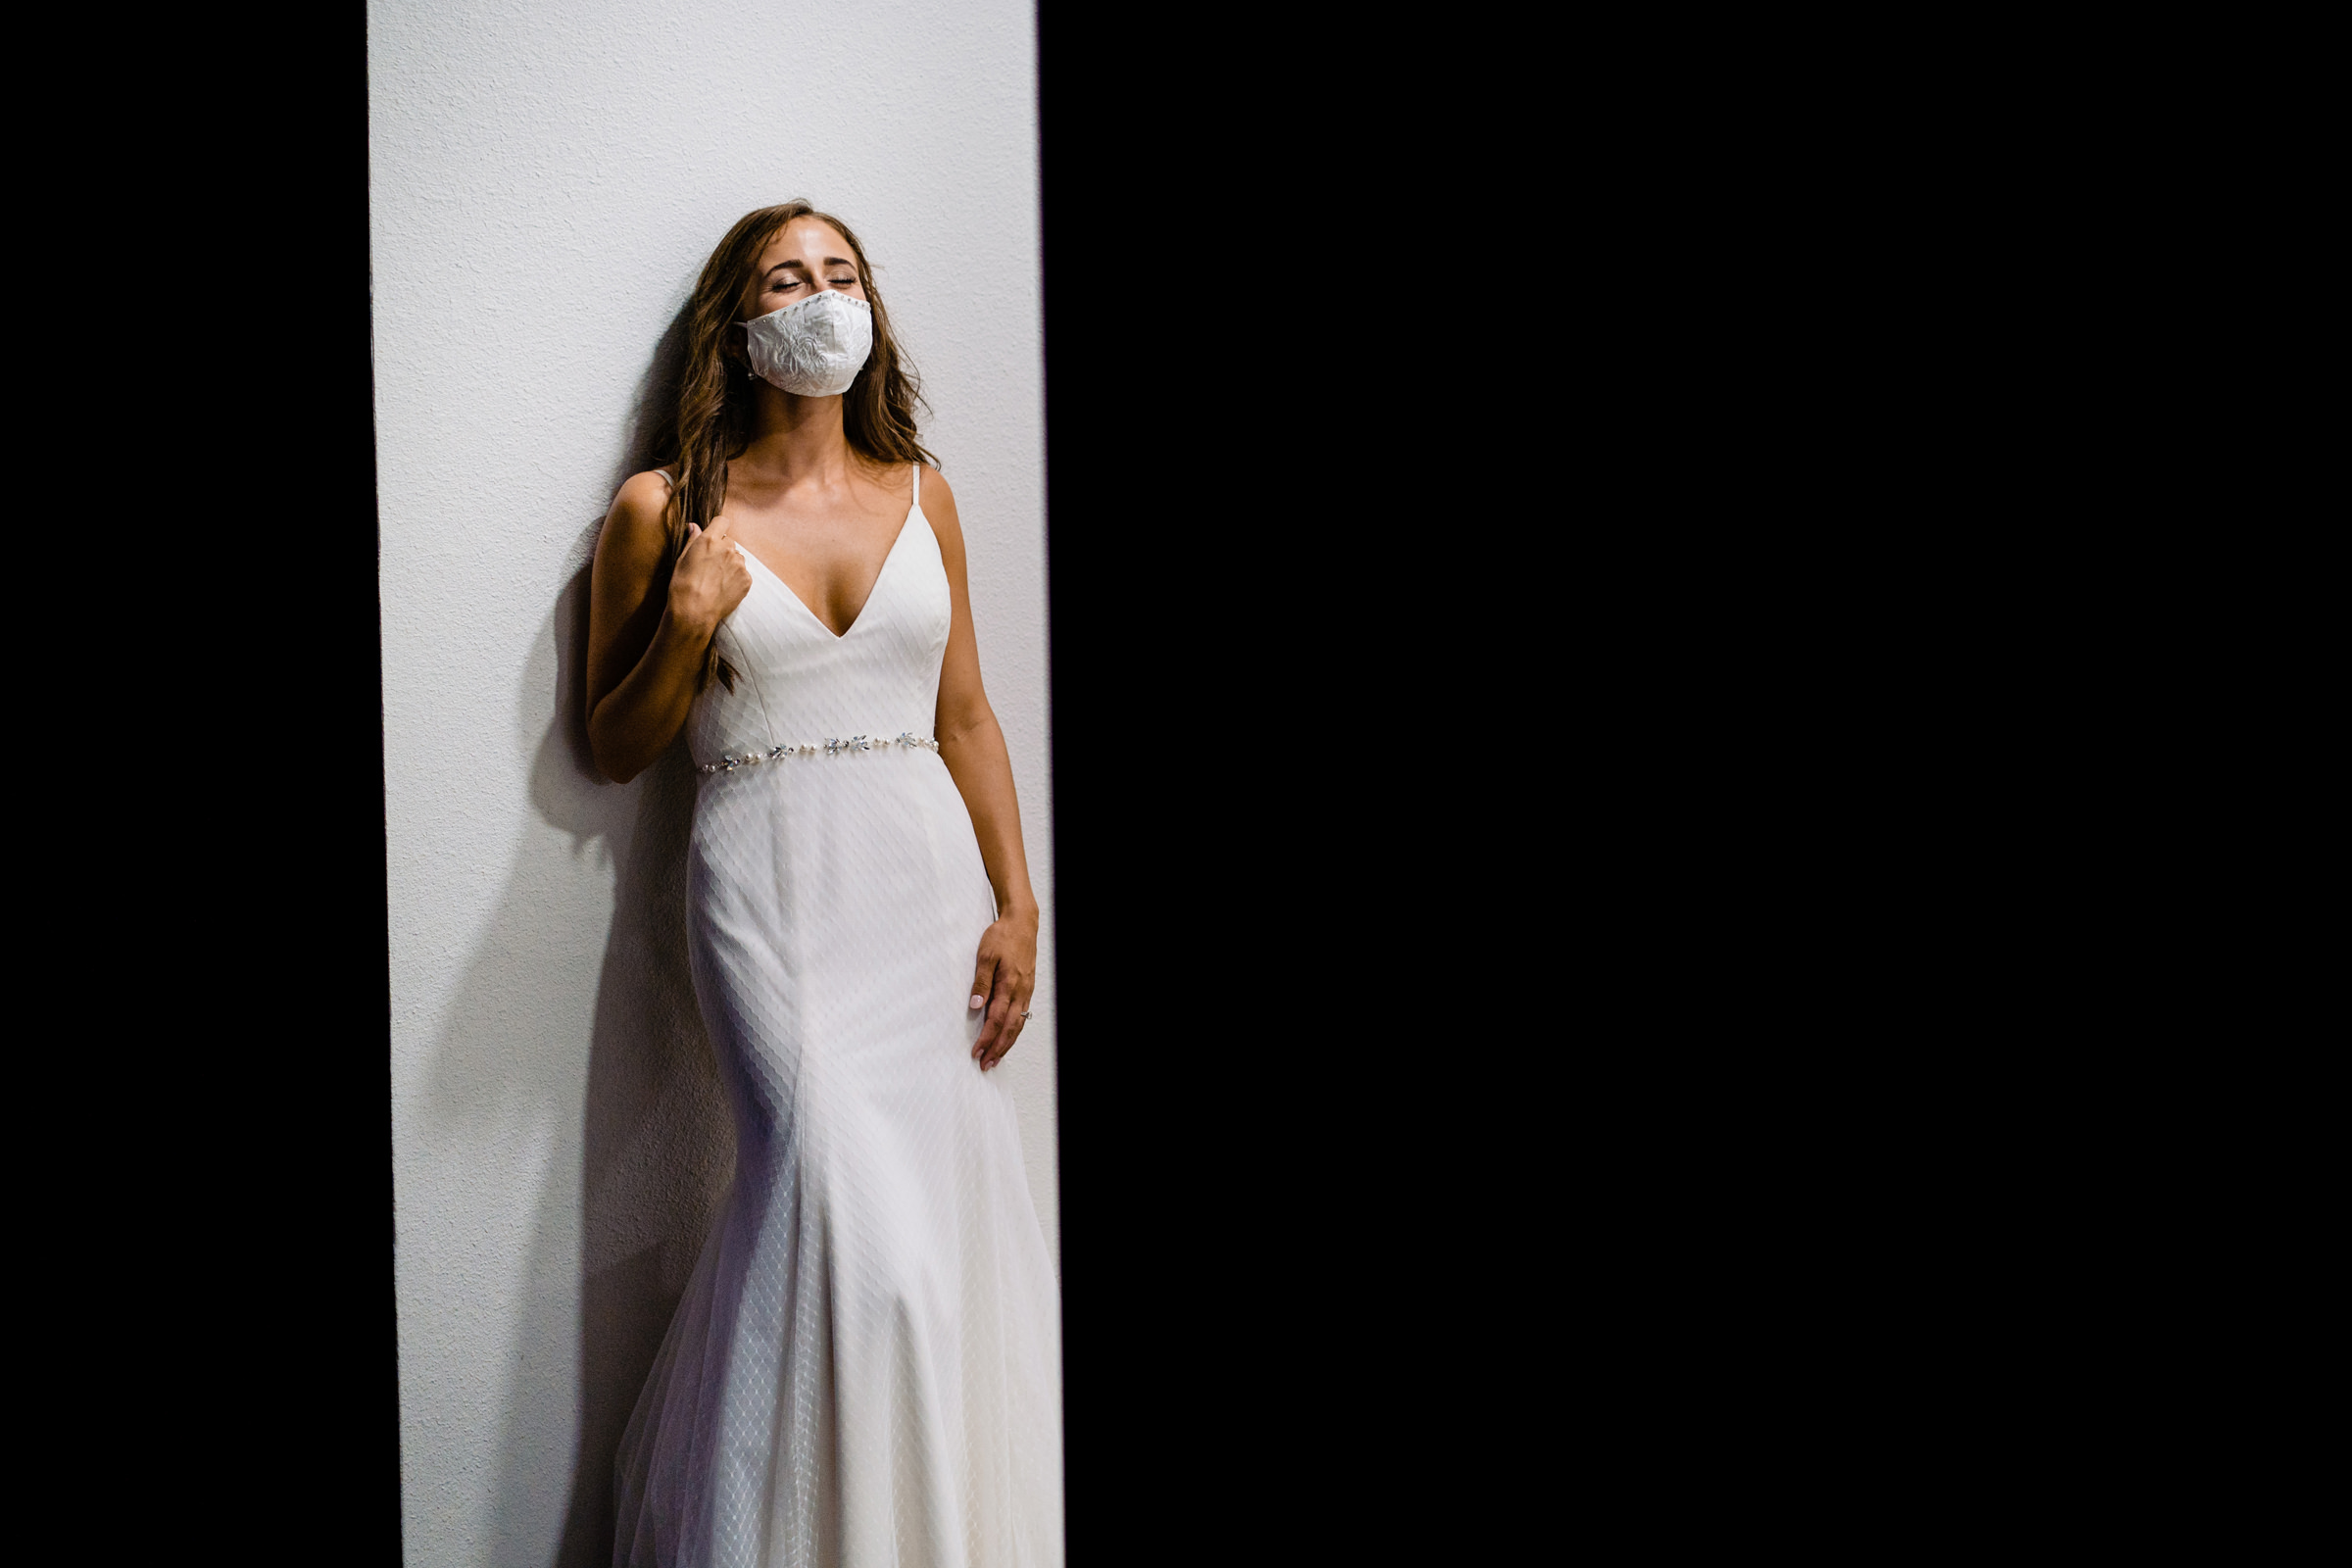 portrait of bride during covid with mask on-Arkansas photographer- photo by Vinson Images